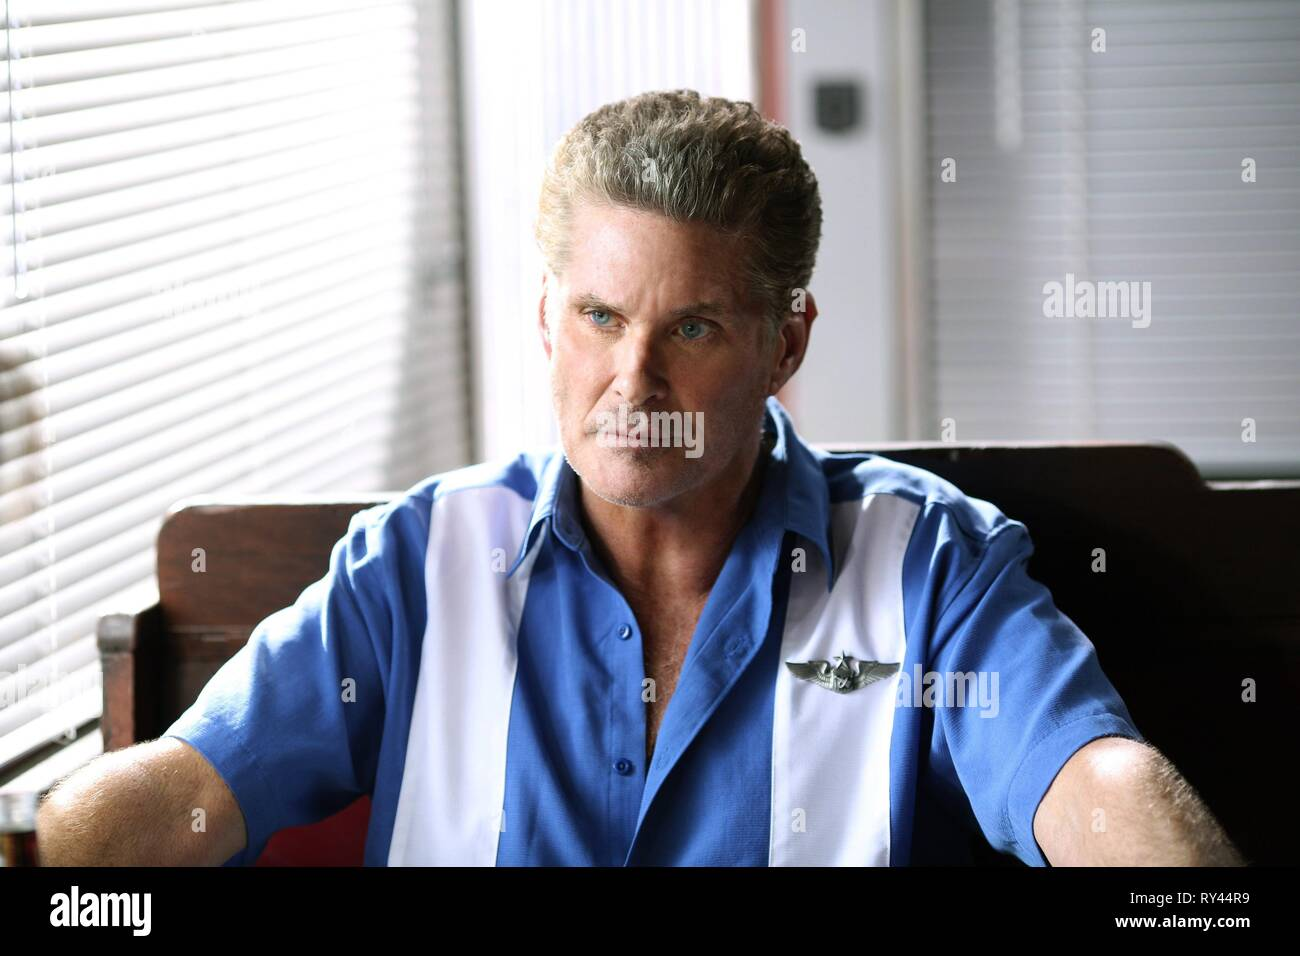 DAVID HASSELHOFF, SHARKNADO 3: OH HELL NO!, 2015 Stock Photo